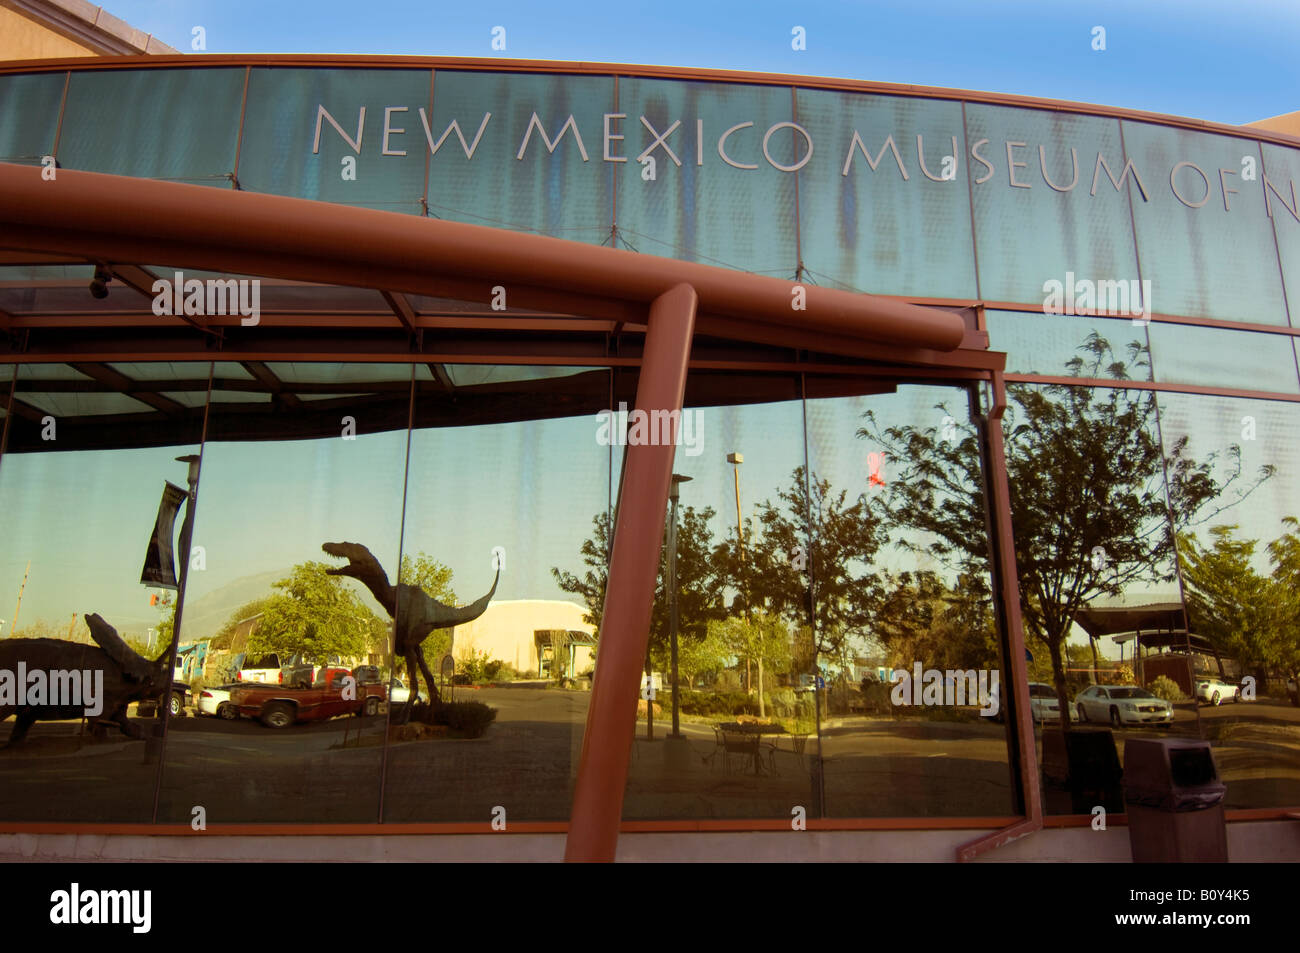 New Mexico Museum of Natural History and Science Albuquerque New Mexico - Stock Image